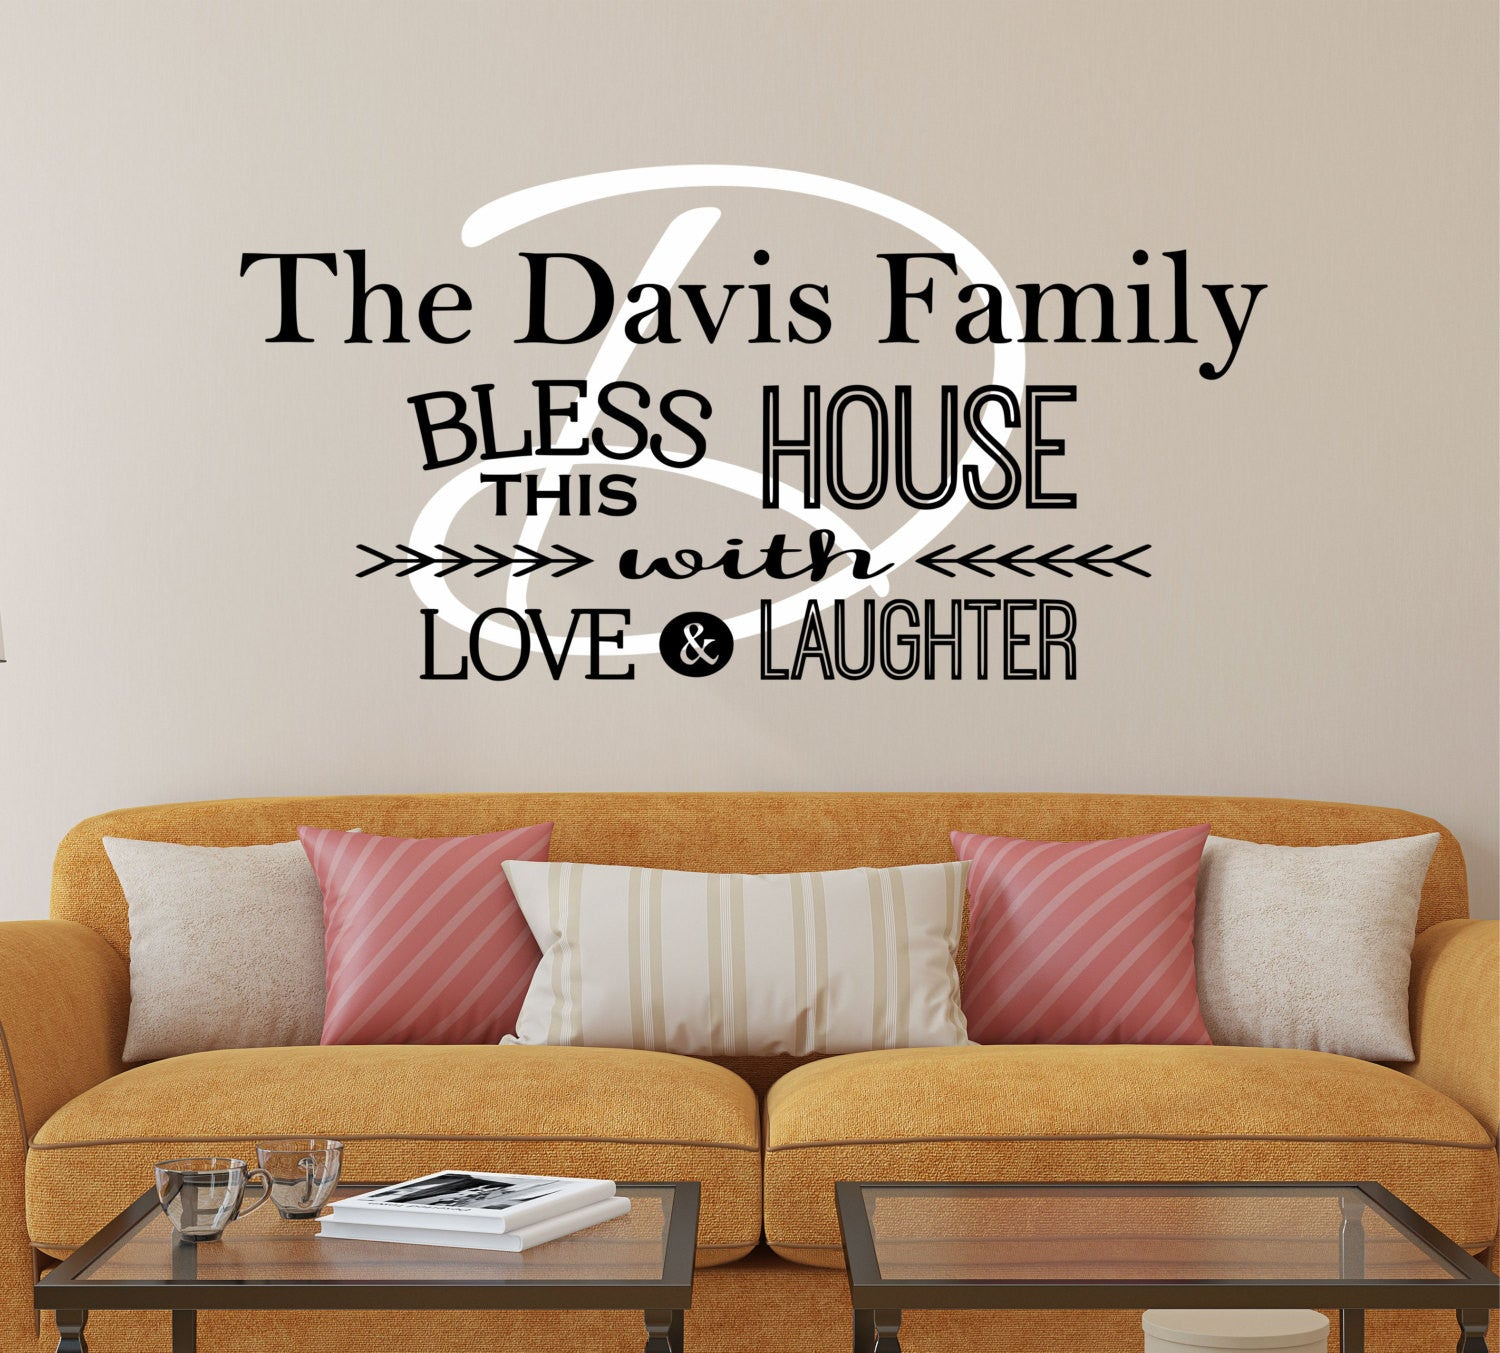 Kitchen Decals   By Decor Designs Decals, Bless This House Wall Decal   Kitchen  Vinyl